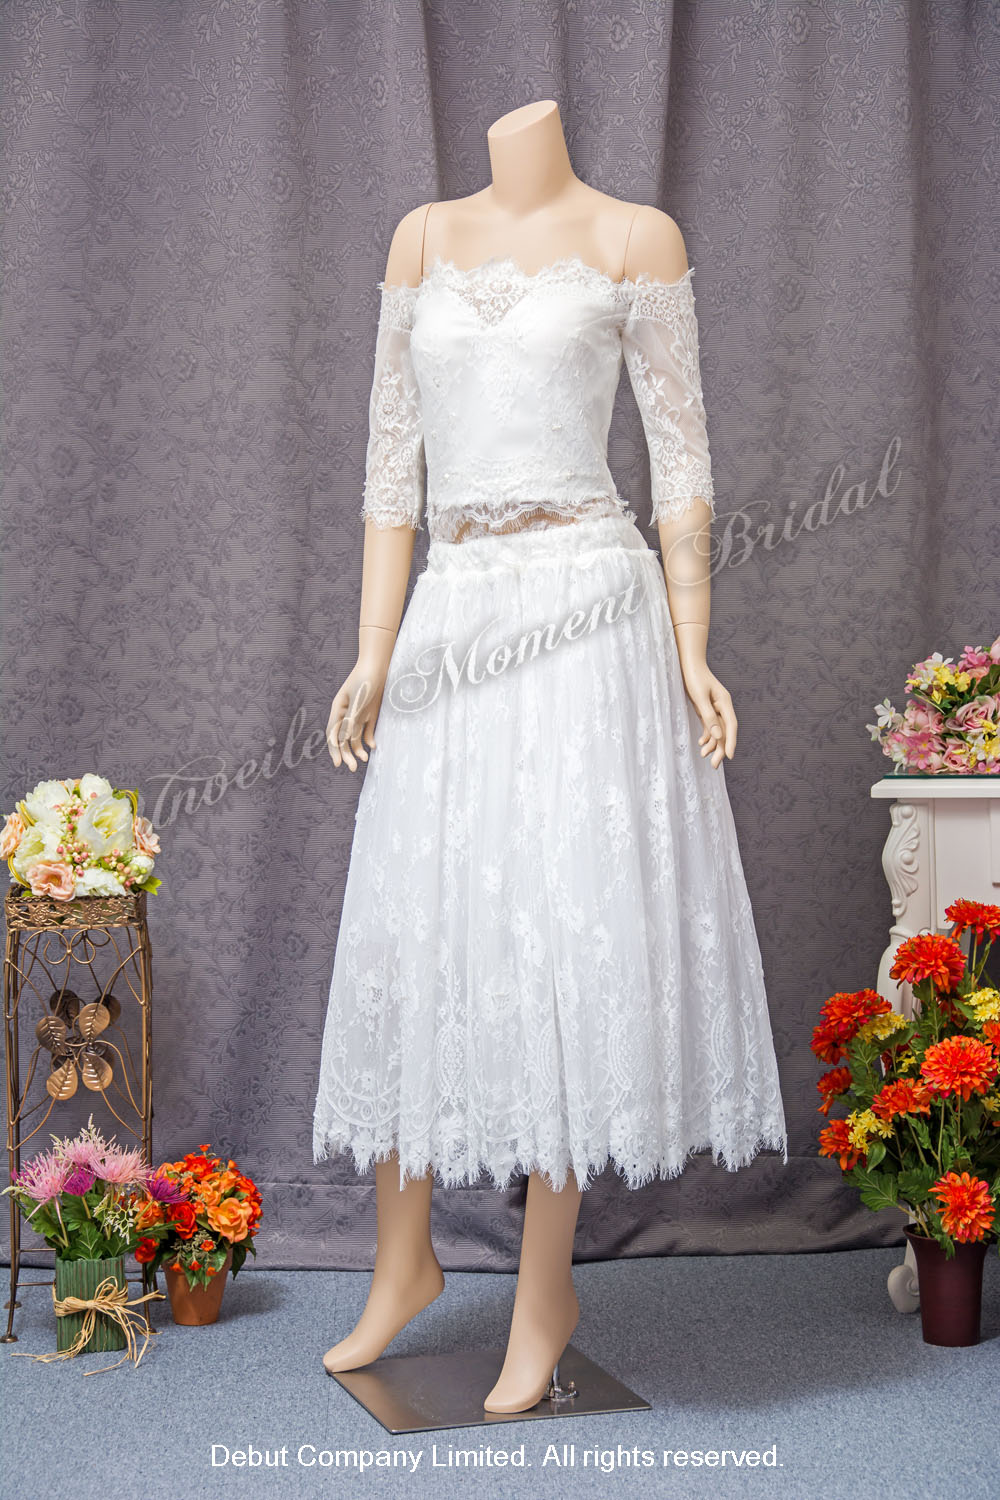 Off-the-shoulder, lace-up, short skirt, two-piece carefree bridal dress. 一字膊蕾絲短裙兩件式輕婚紗